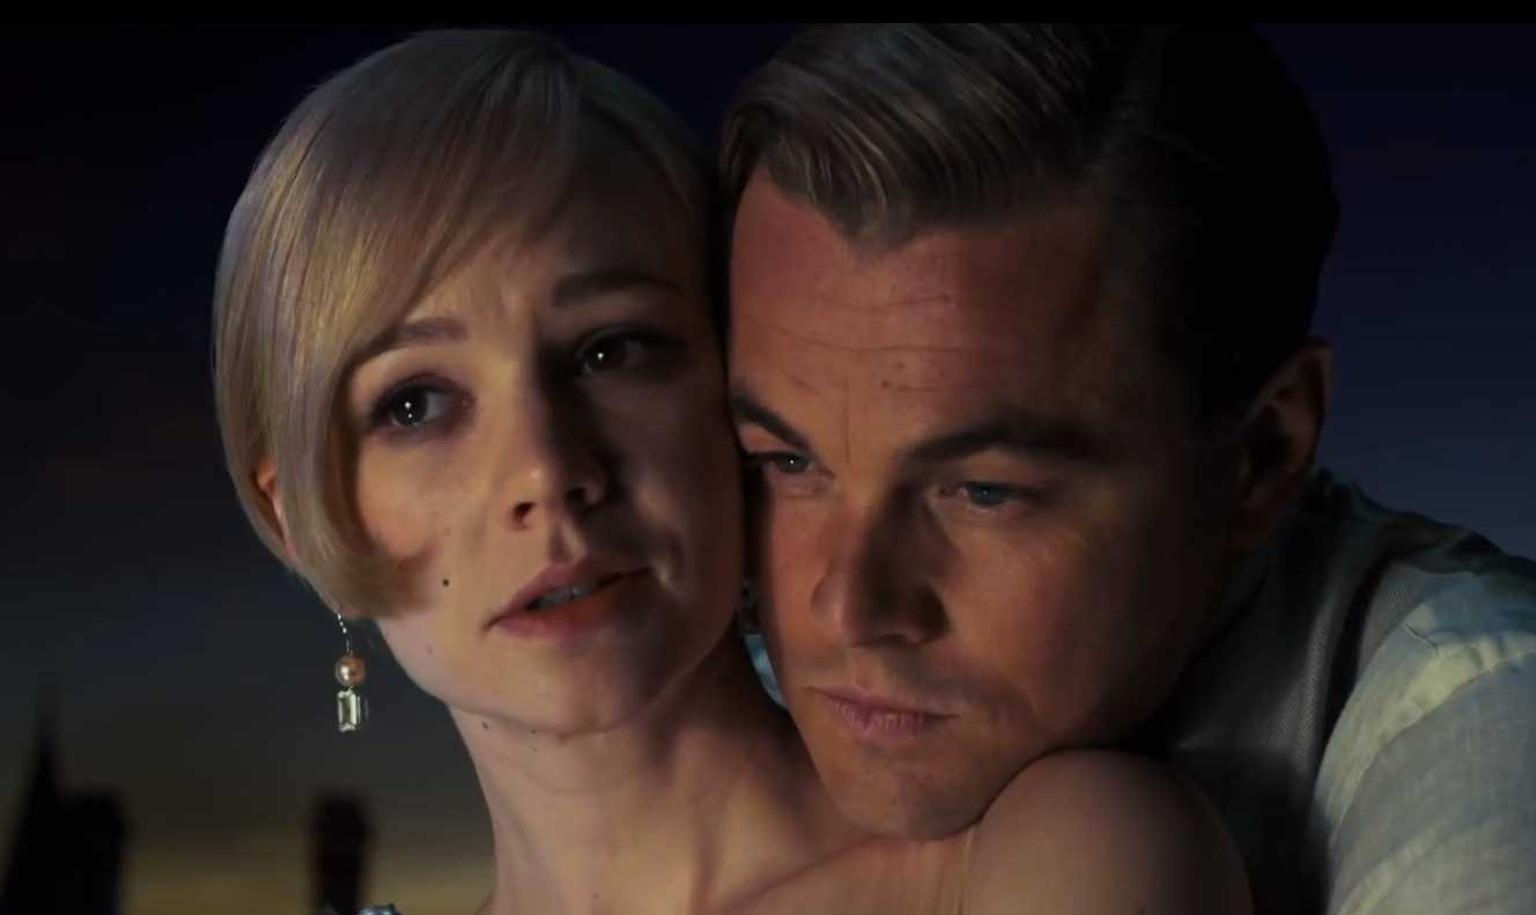 Tiffany & Co jewels shine in The Great Gatsby film trailer